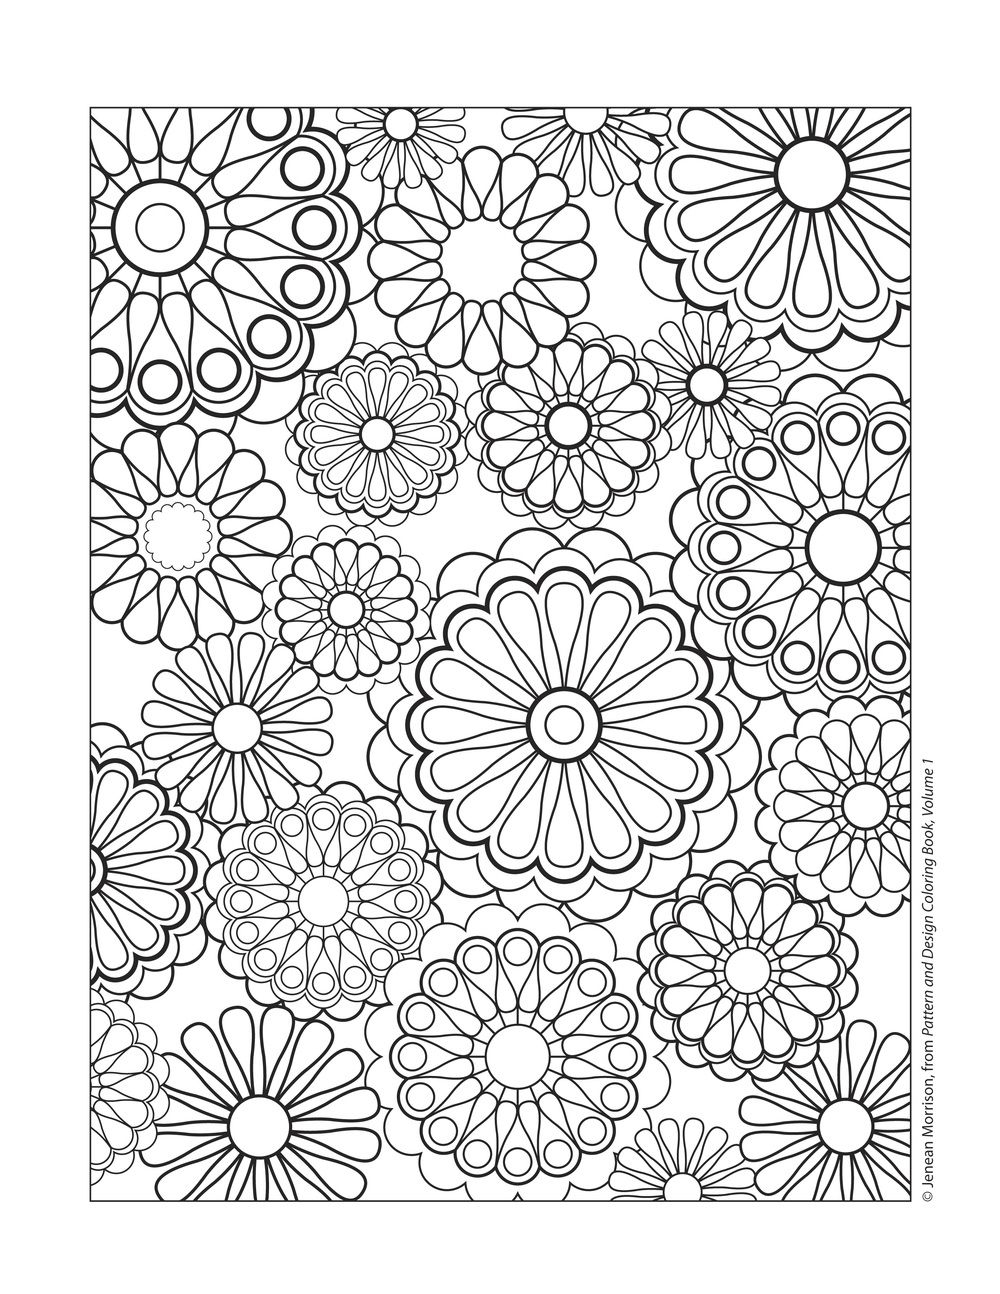 printable middle school coloring pages free printable coloring pages for middle school students coloring school printable middle pages